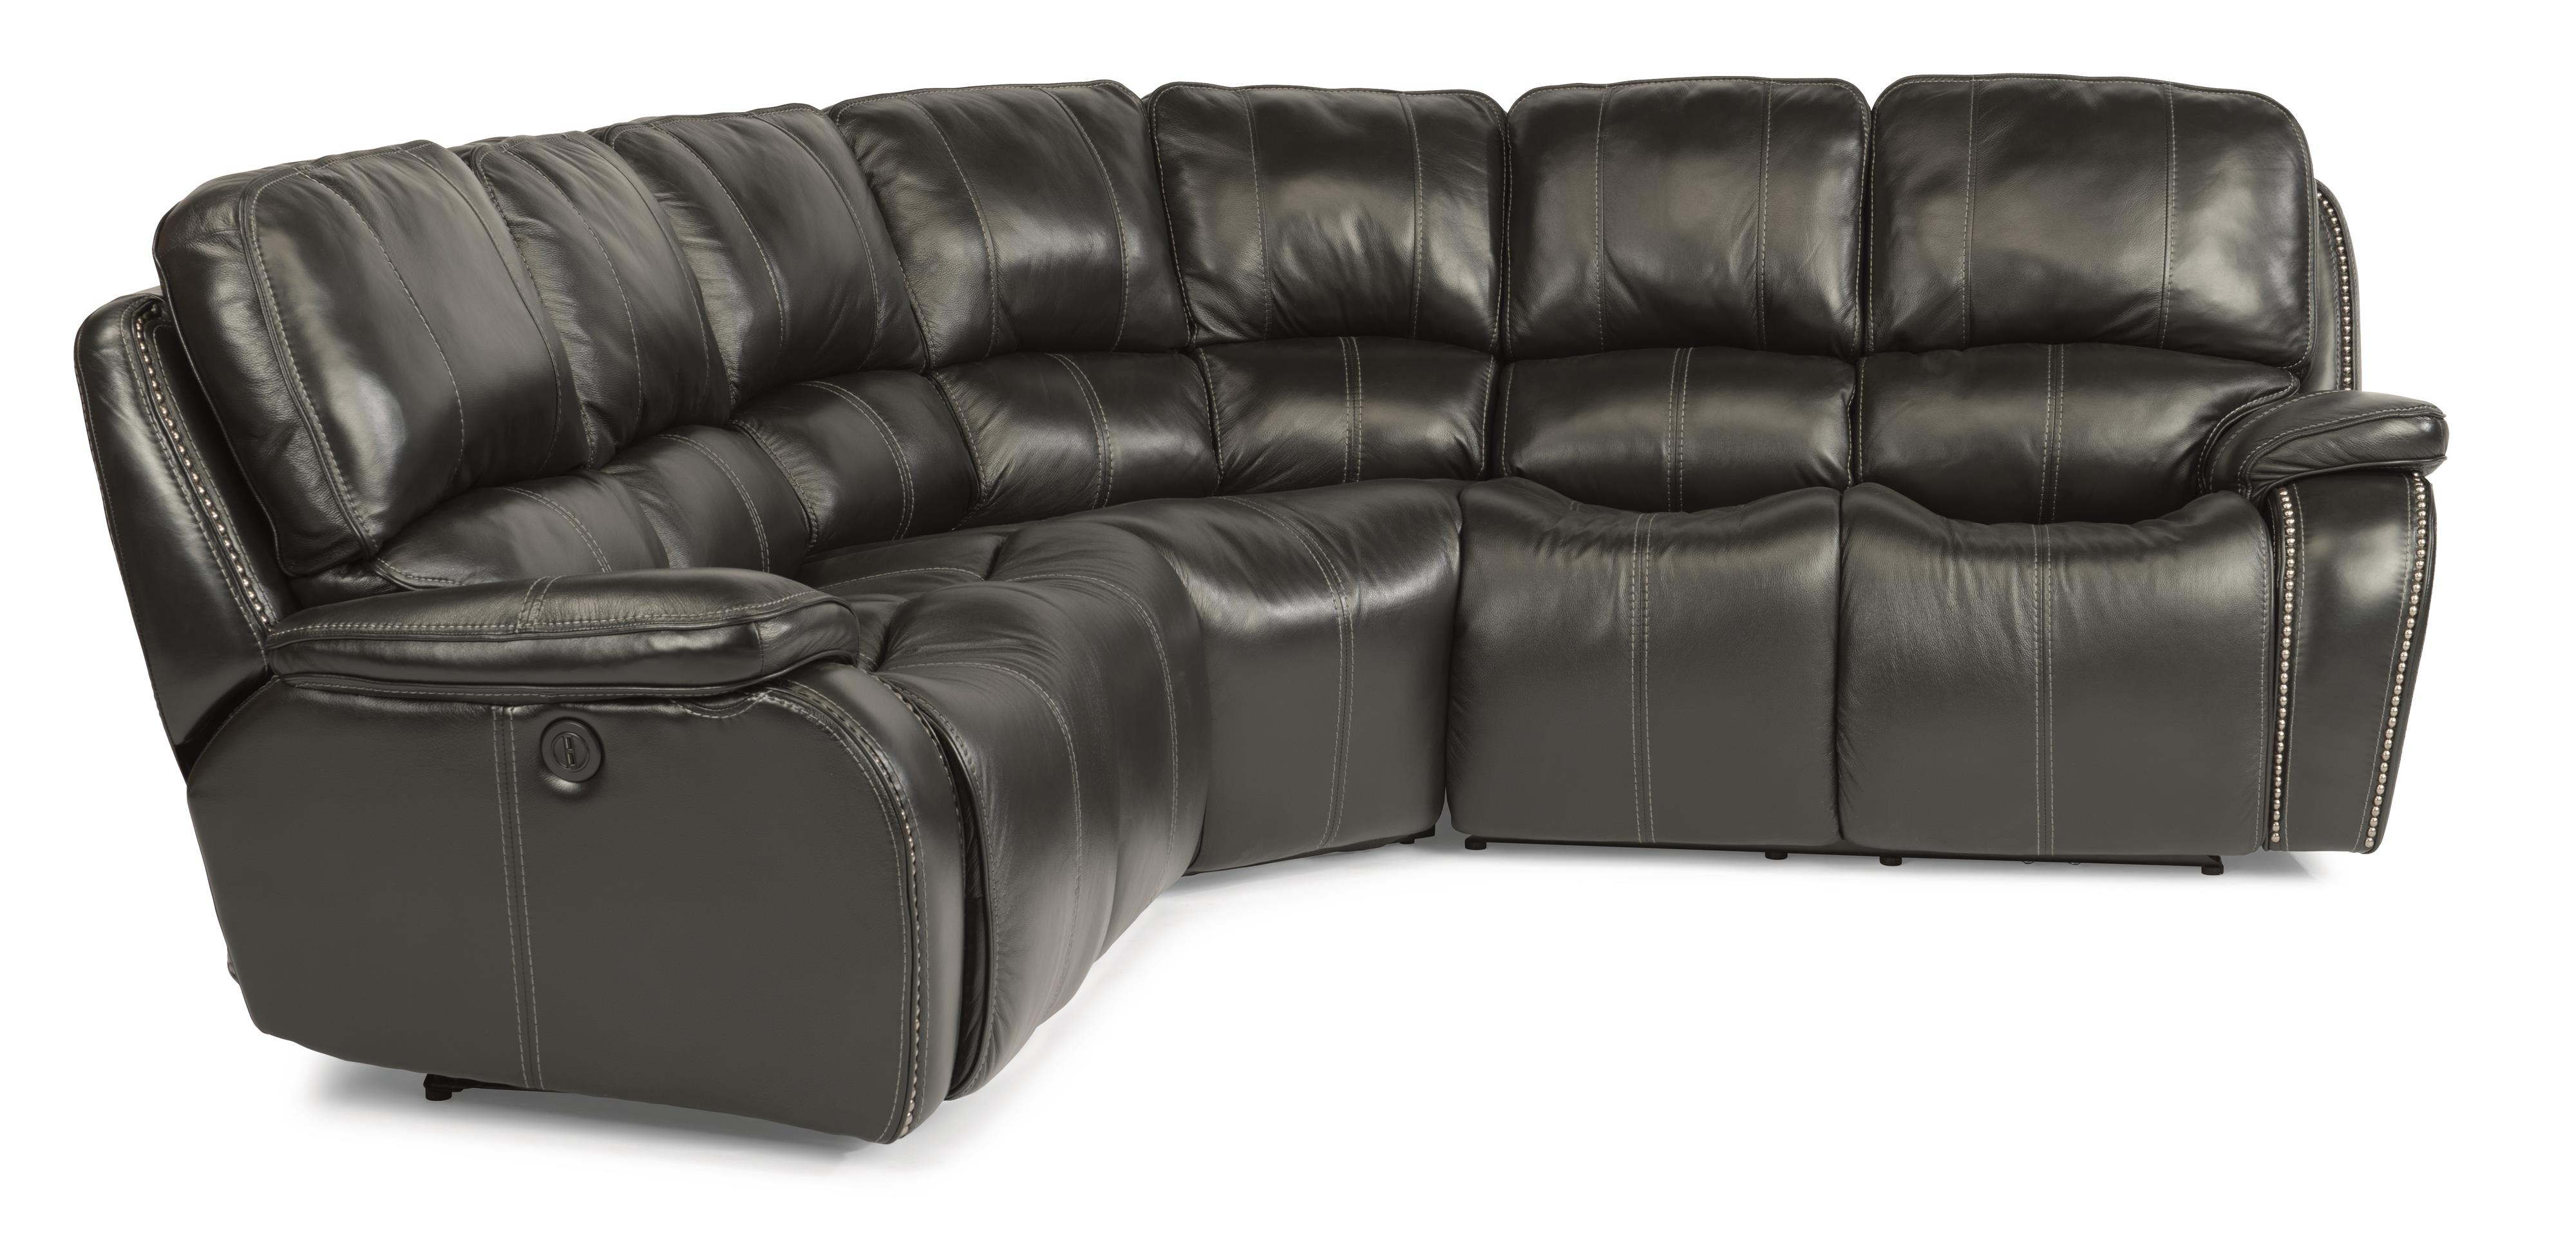 Flexsteel Latitudes-MacKay 3 Pc Power Reclining Sectional Sofa - Item Number: 1617-65P+23+66P-014-03LV